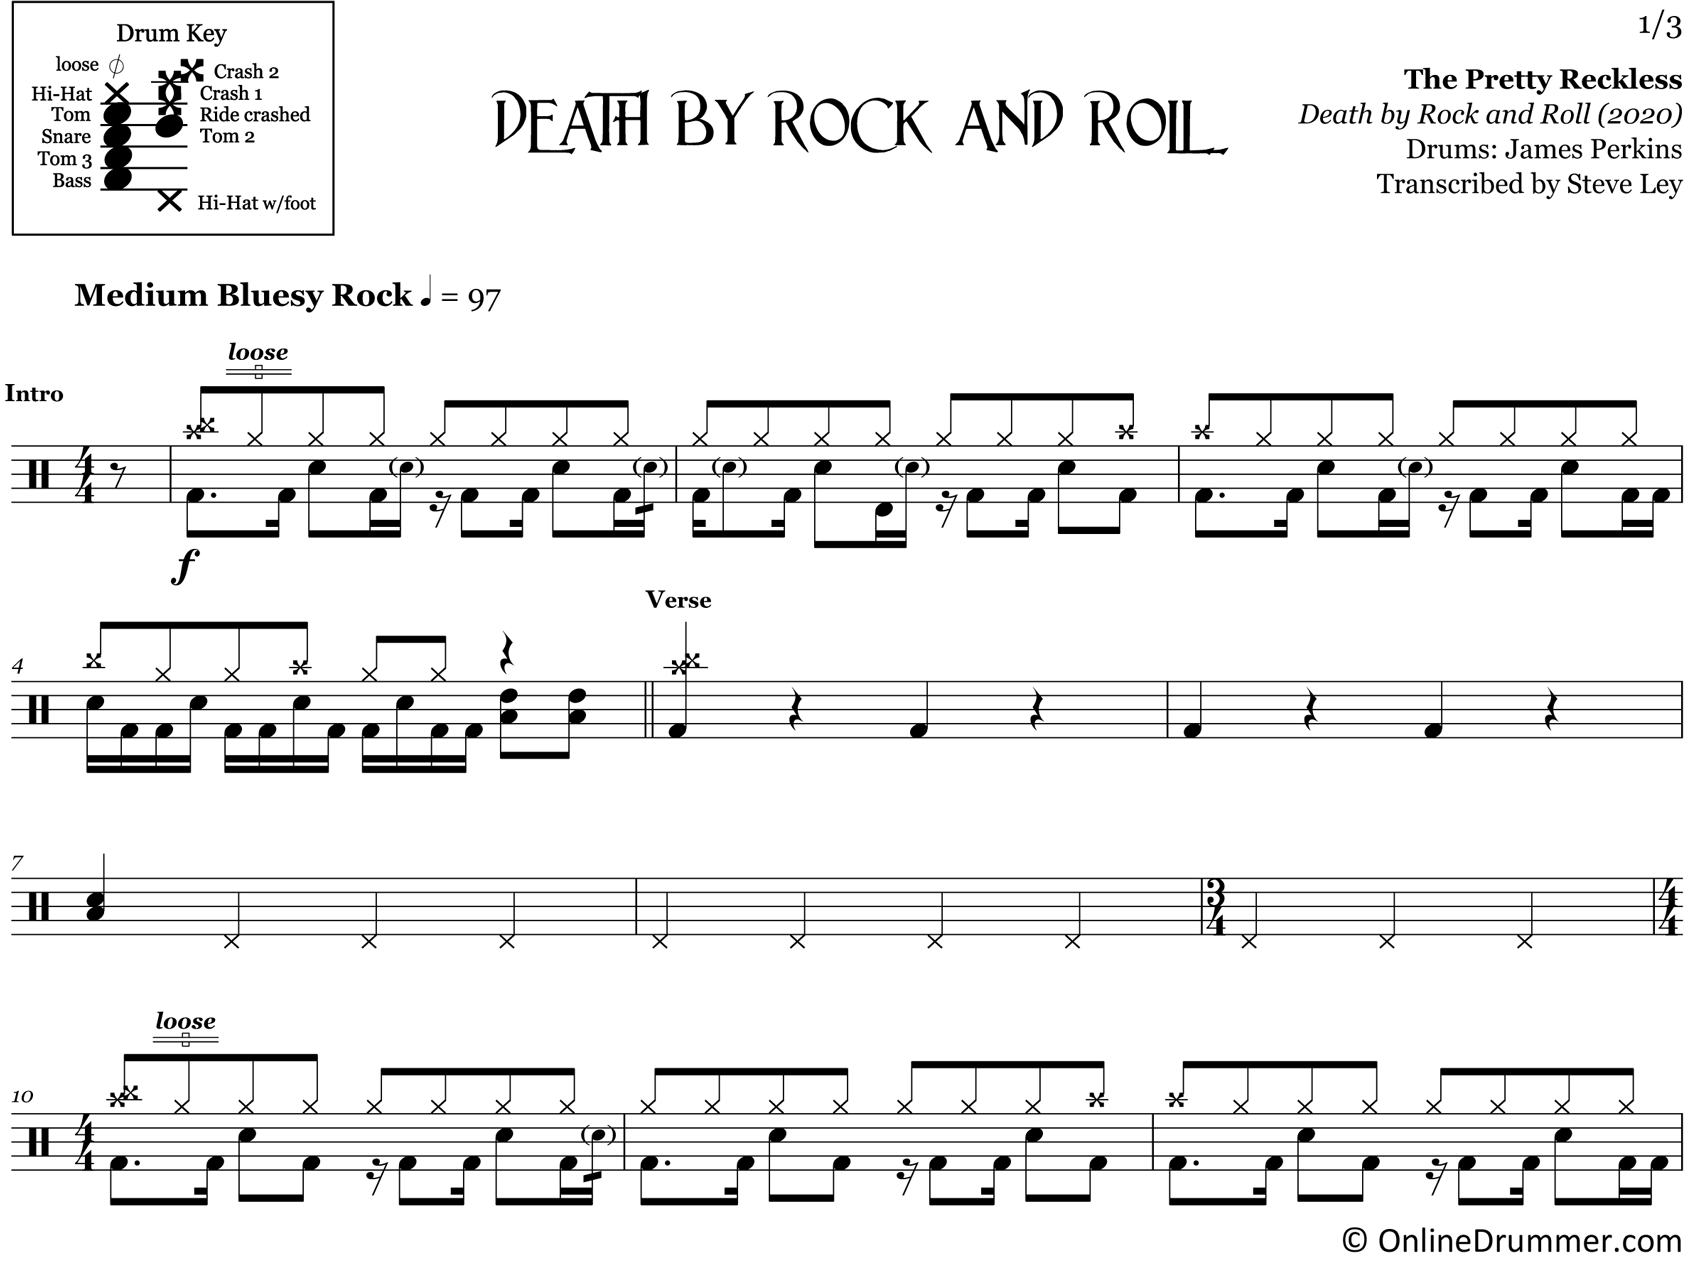 Death by Rock and Roll - The Pretty Reckless - Drum Sheet Music